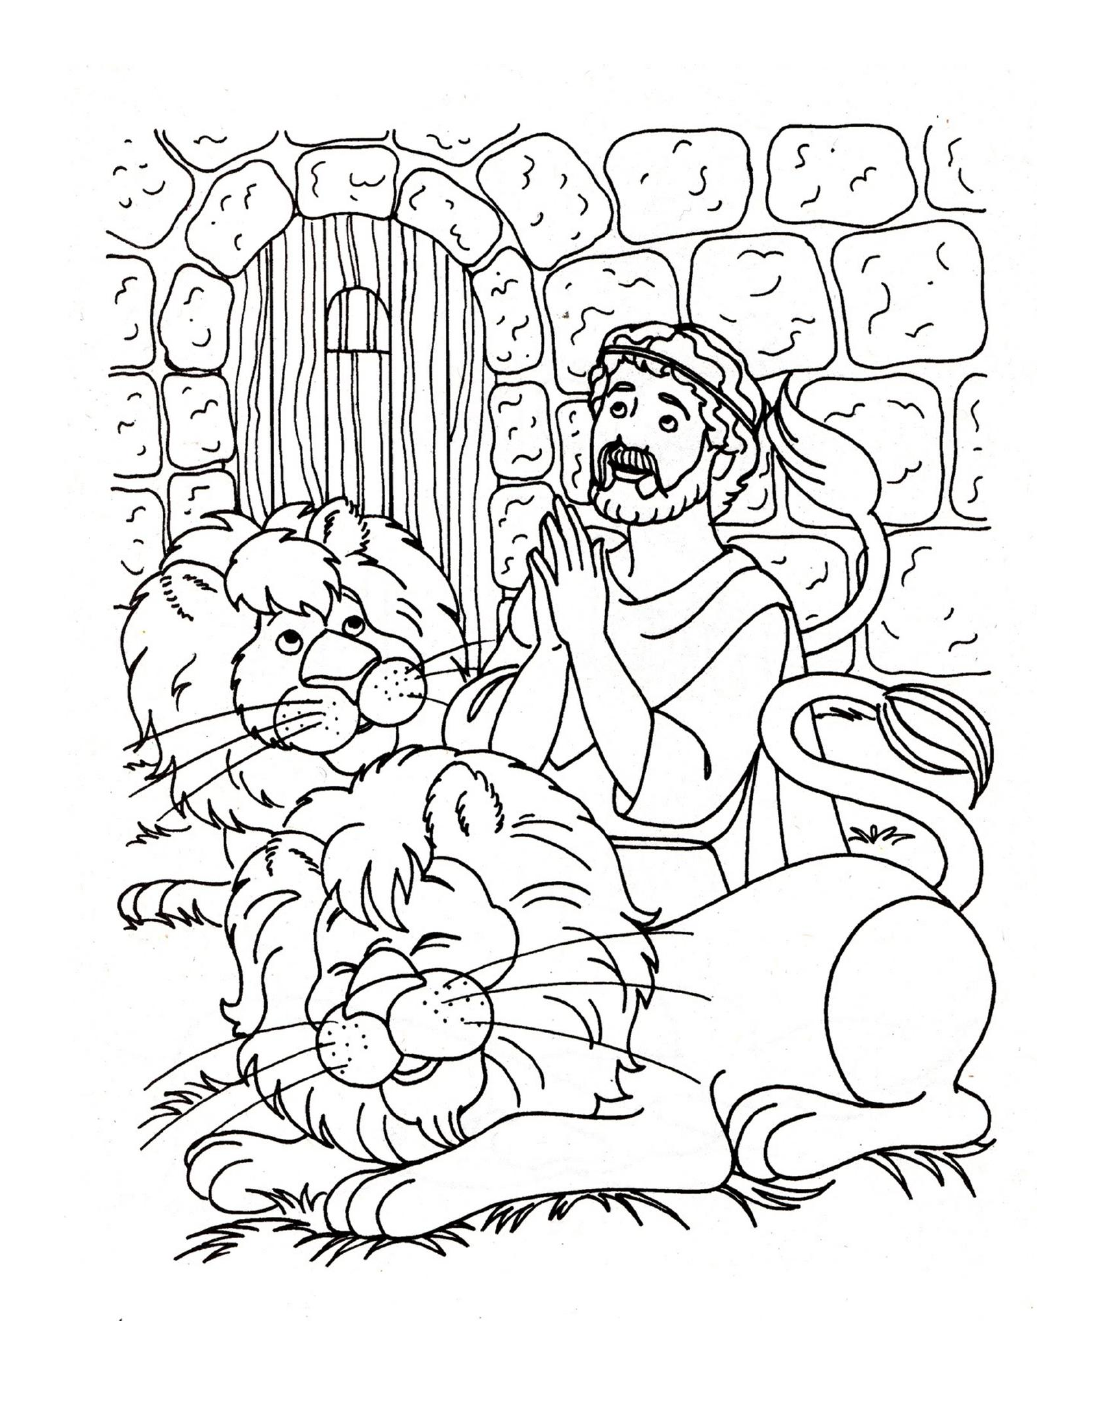 Lions coloring pictures - Find The Full Size Image Here